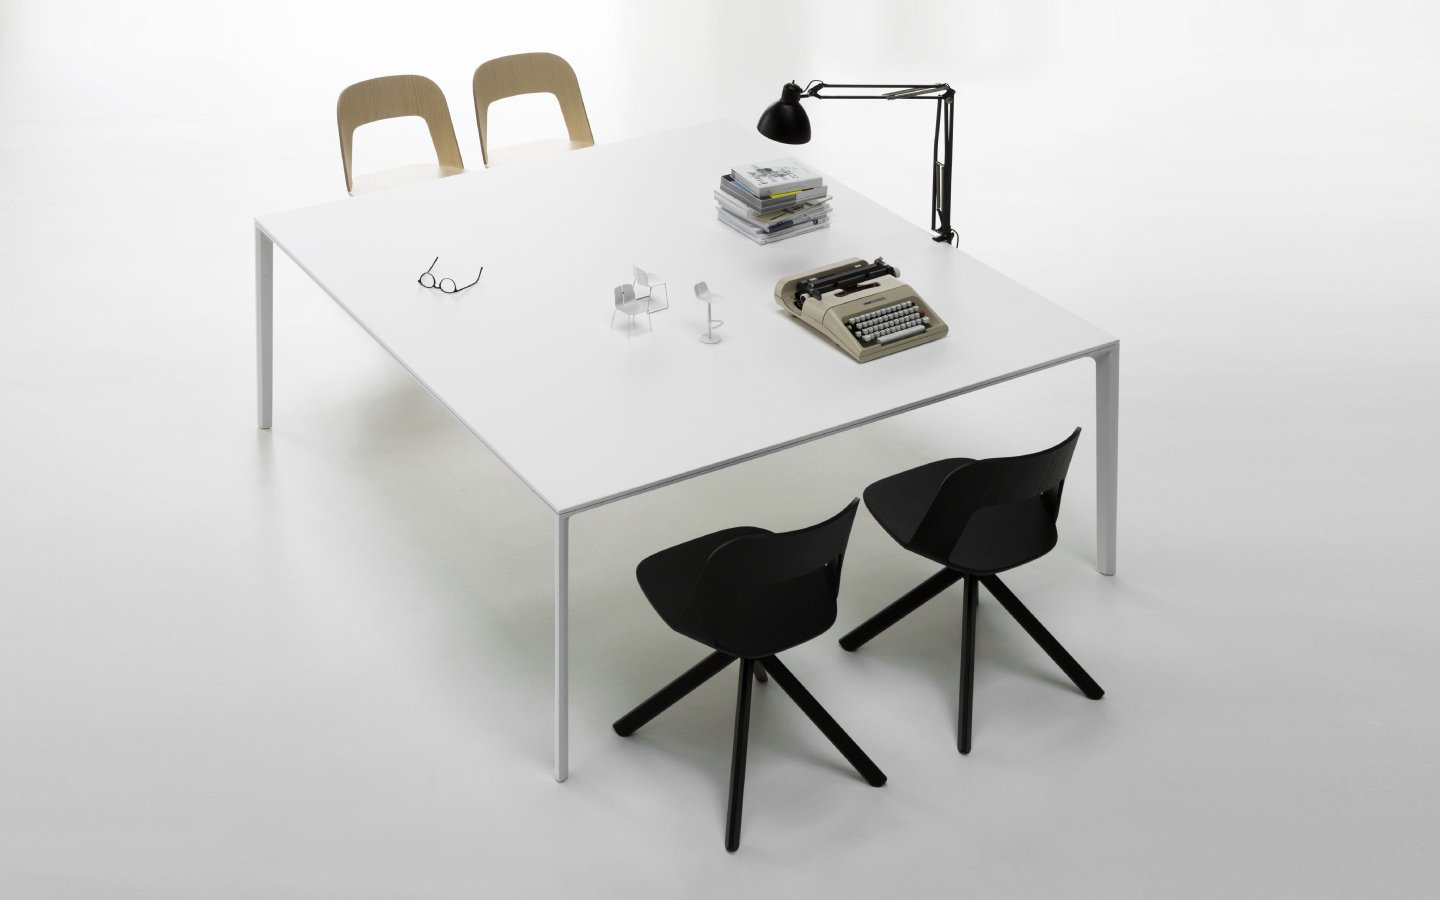 Arco Chair office from lapalma, designed by Francesco Rota